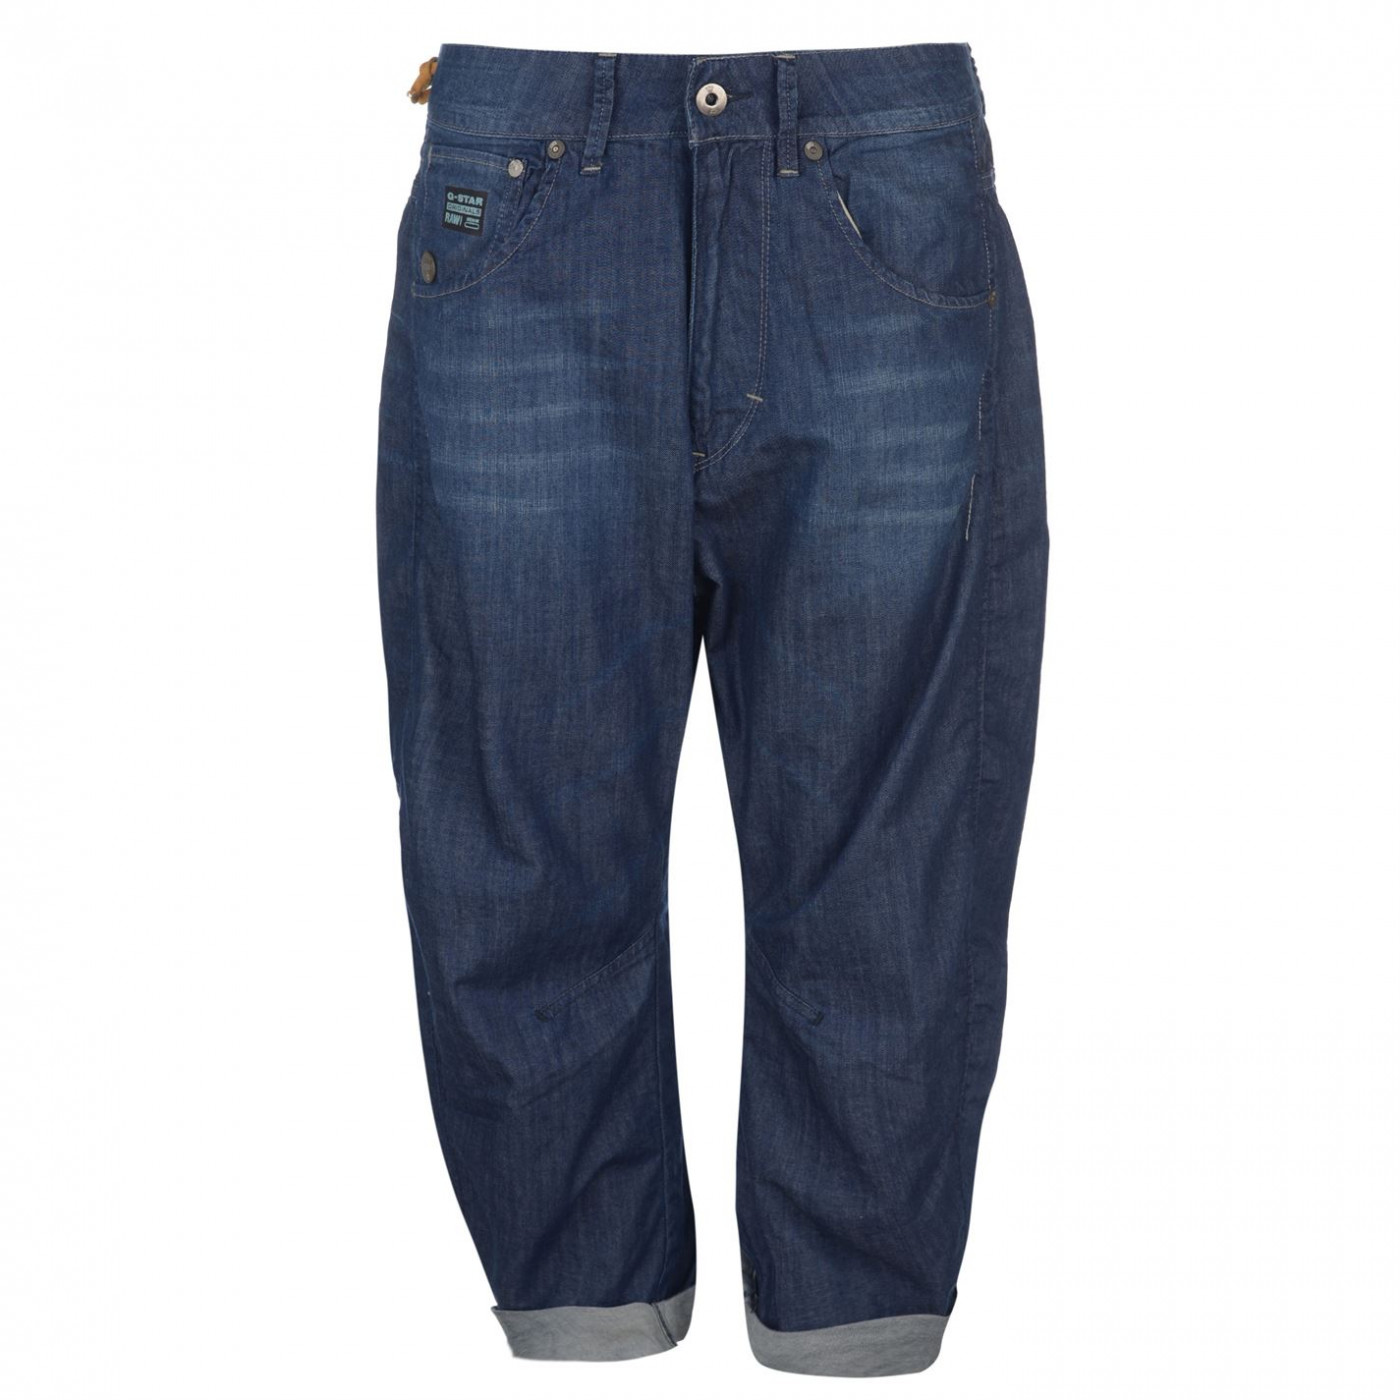 G Star 60489 Tapered Jeans